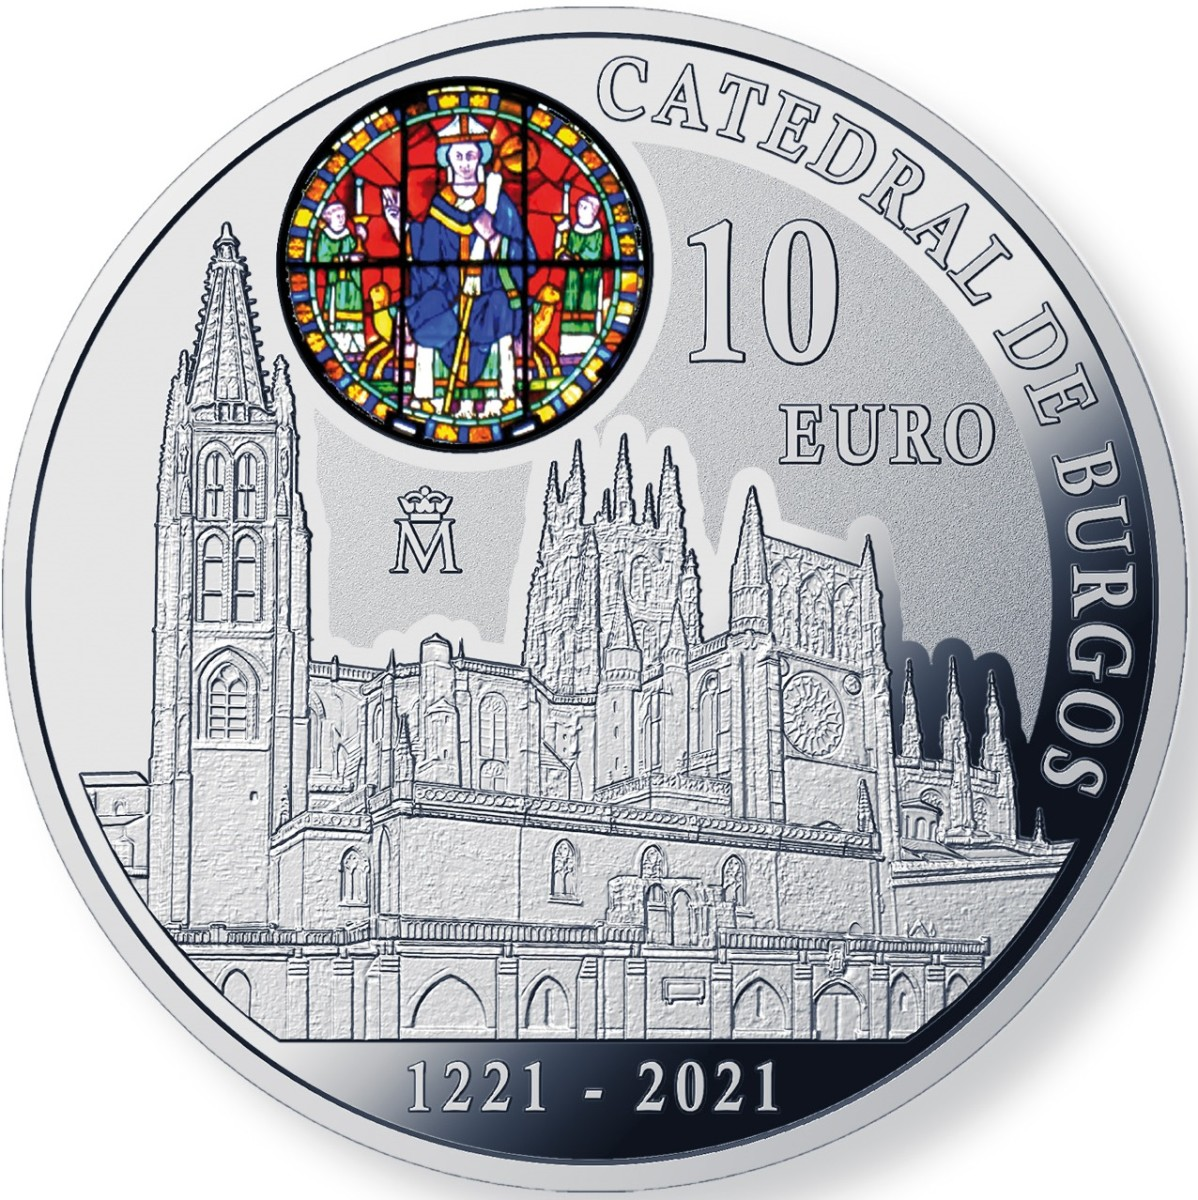 The 800th Anniversary of the Cathedral of Burgos is celebrated on a new 10 Euro silver coin of Spain. The stained glass feature is a highlight of this very detailed new issue.